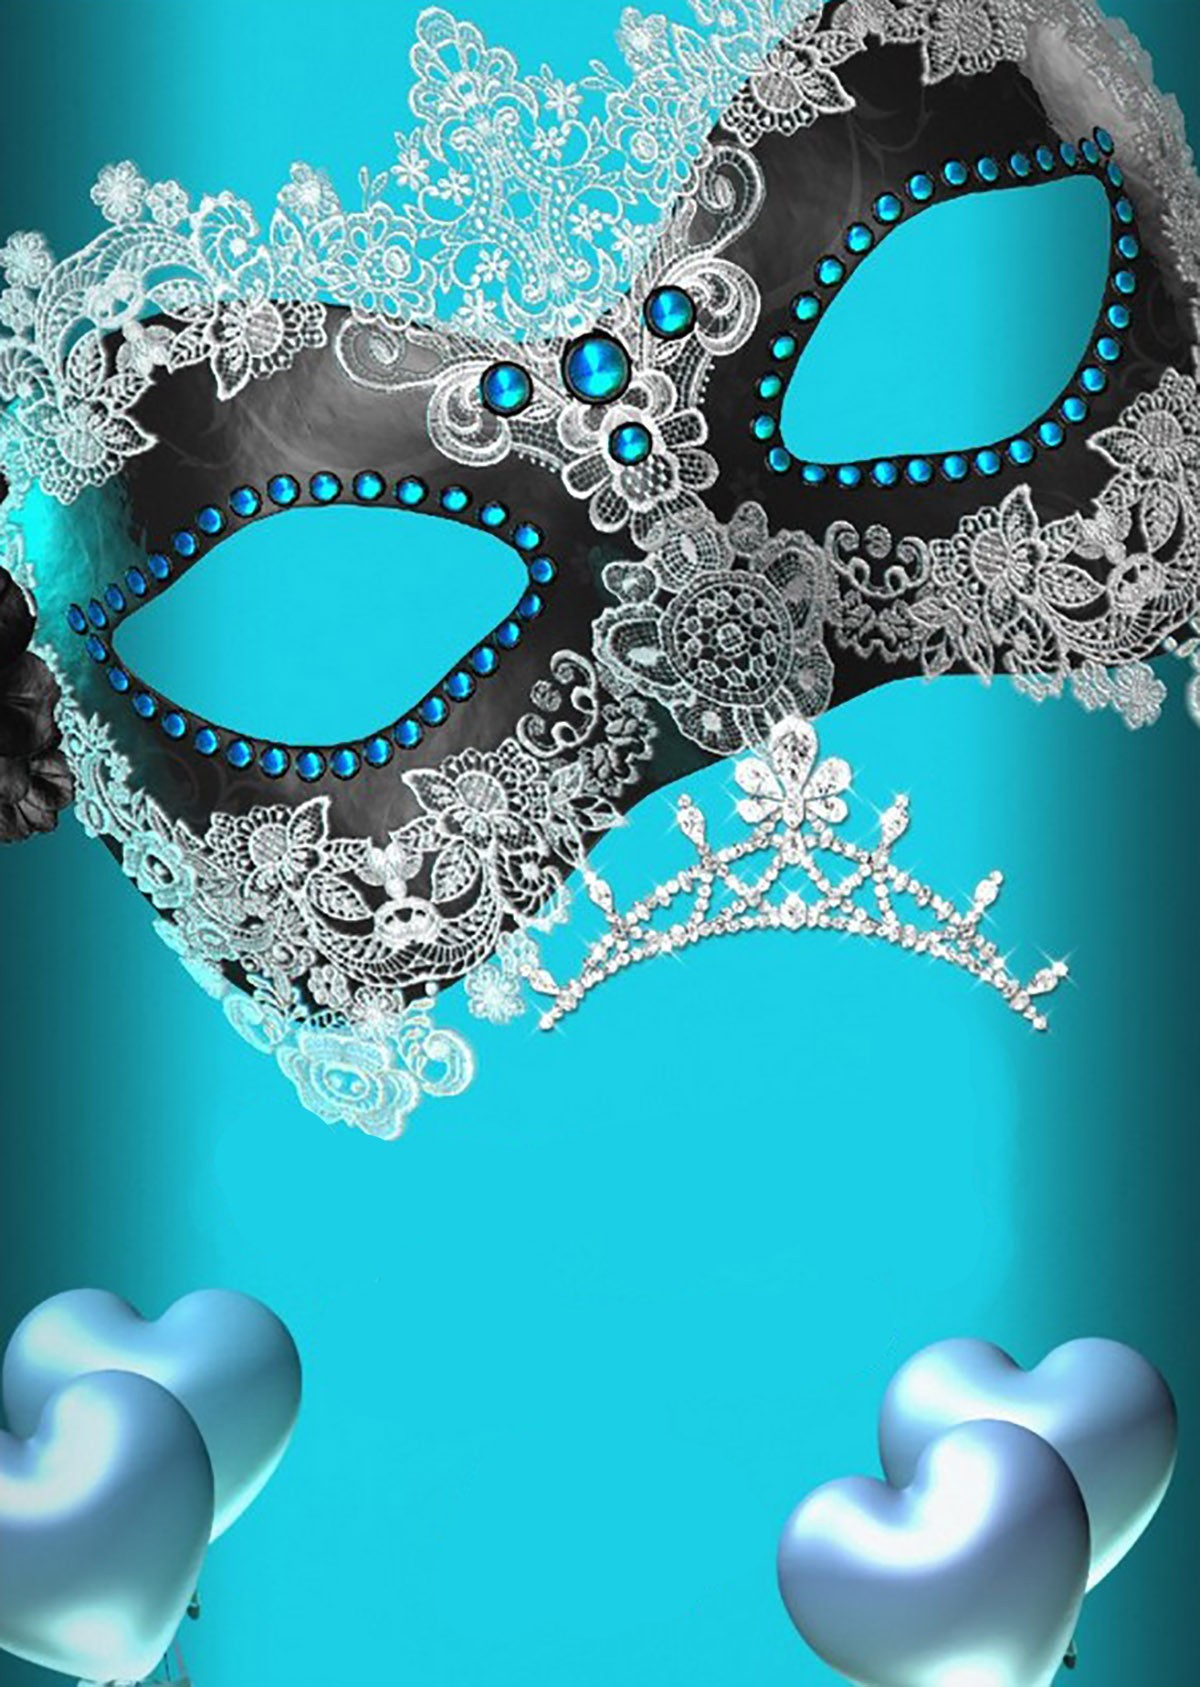 Free Printable Masquerade Invitation Templates ...